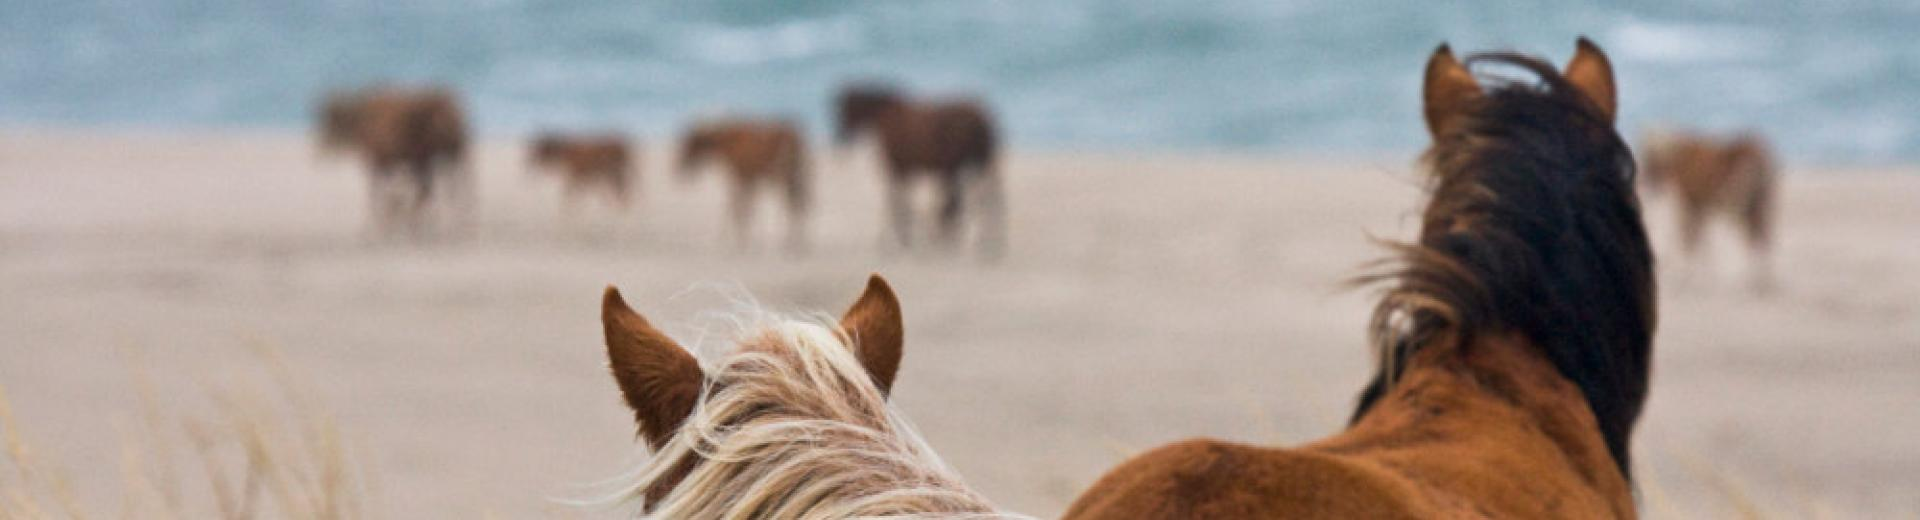 Sable horses getty